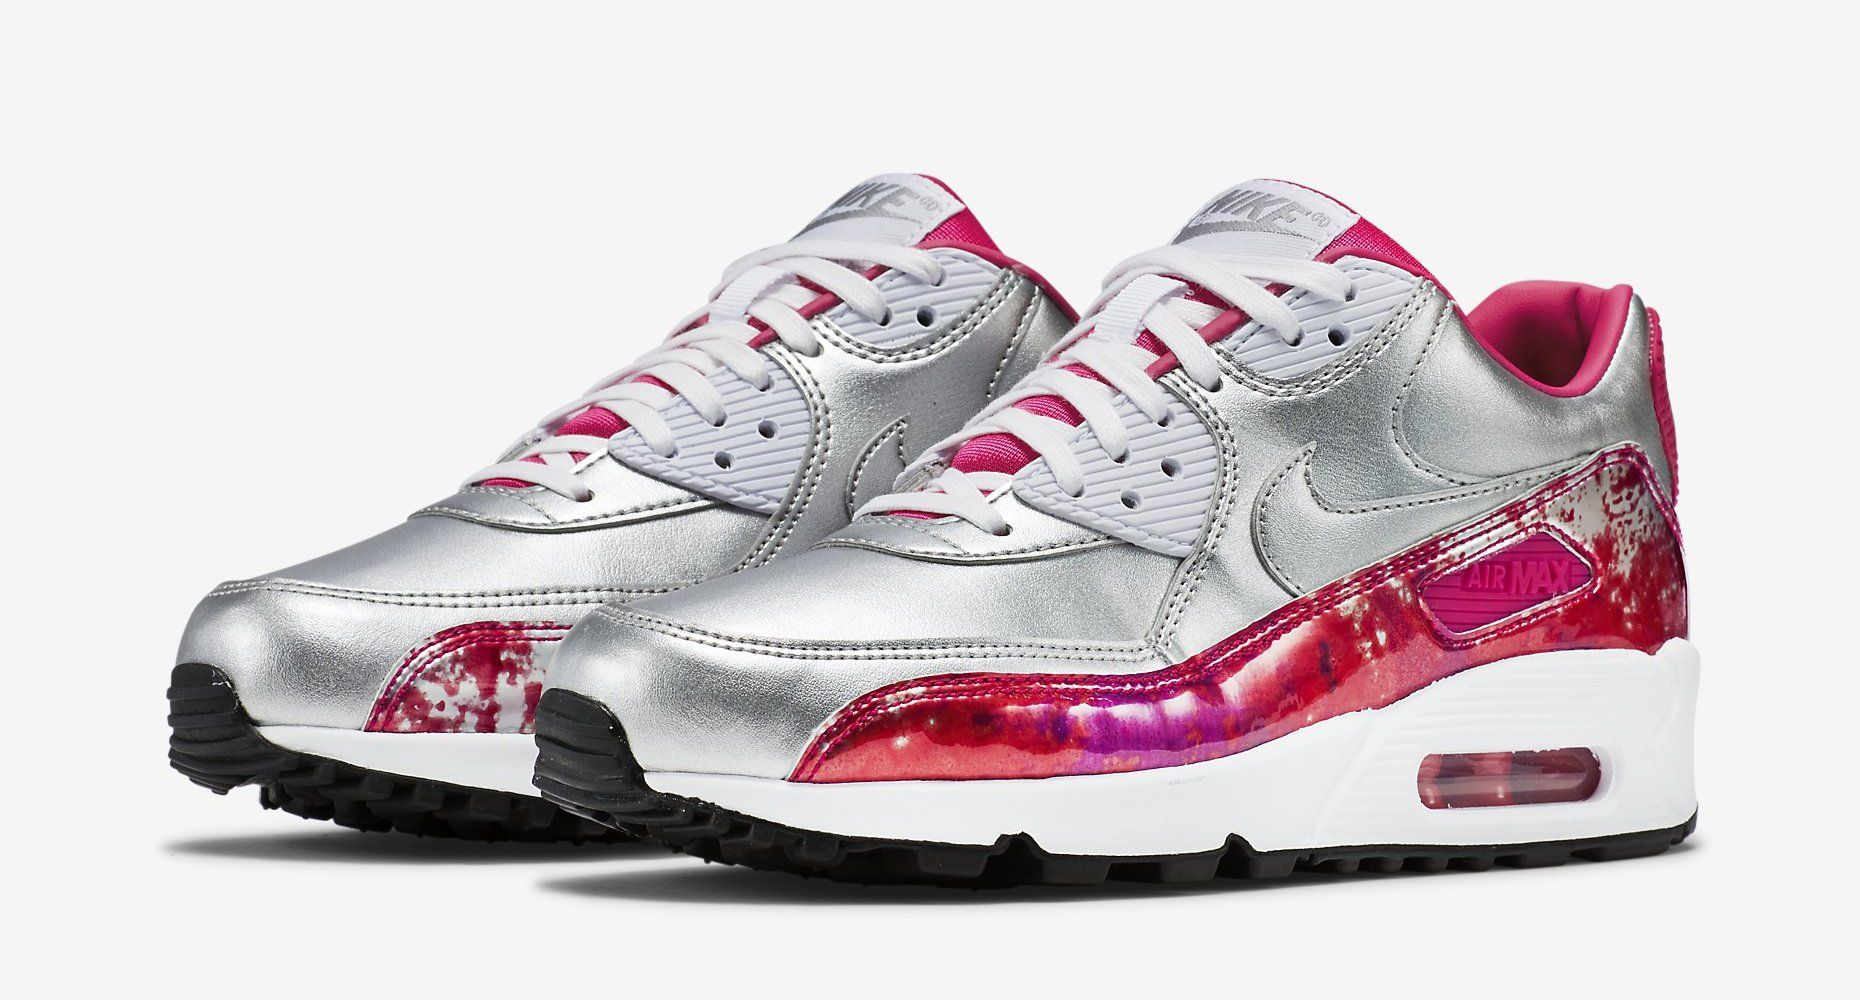 Nike Air Max 90 Femmes Rose Maquillage